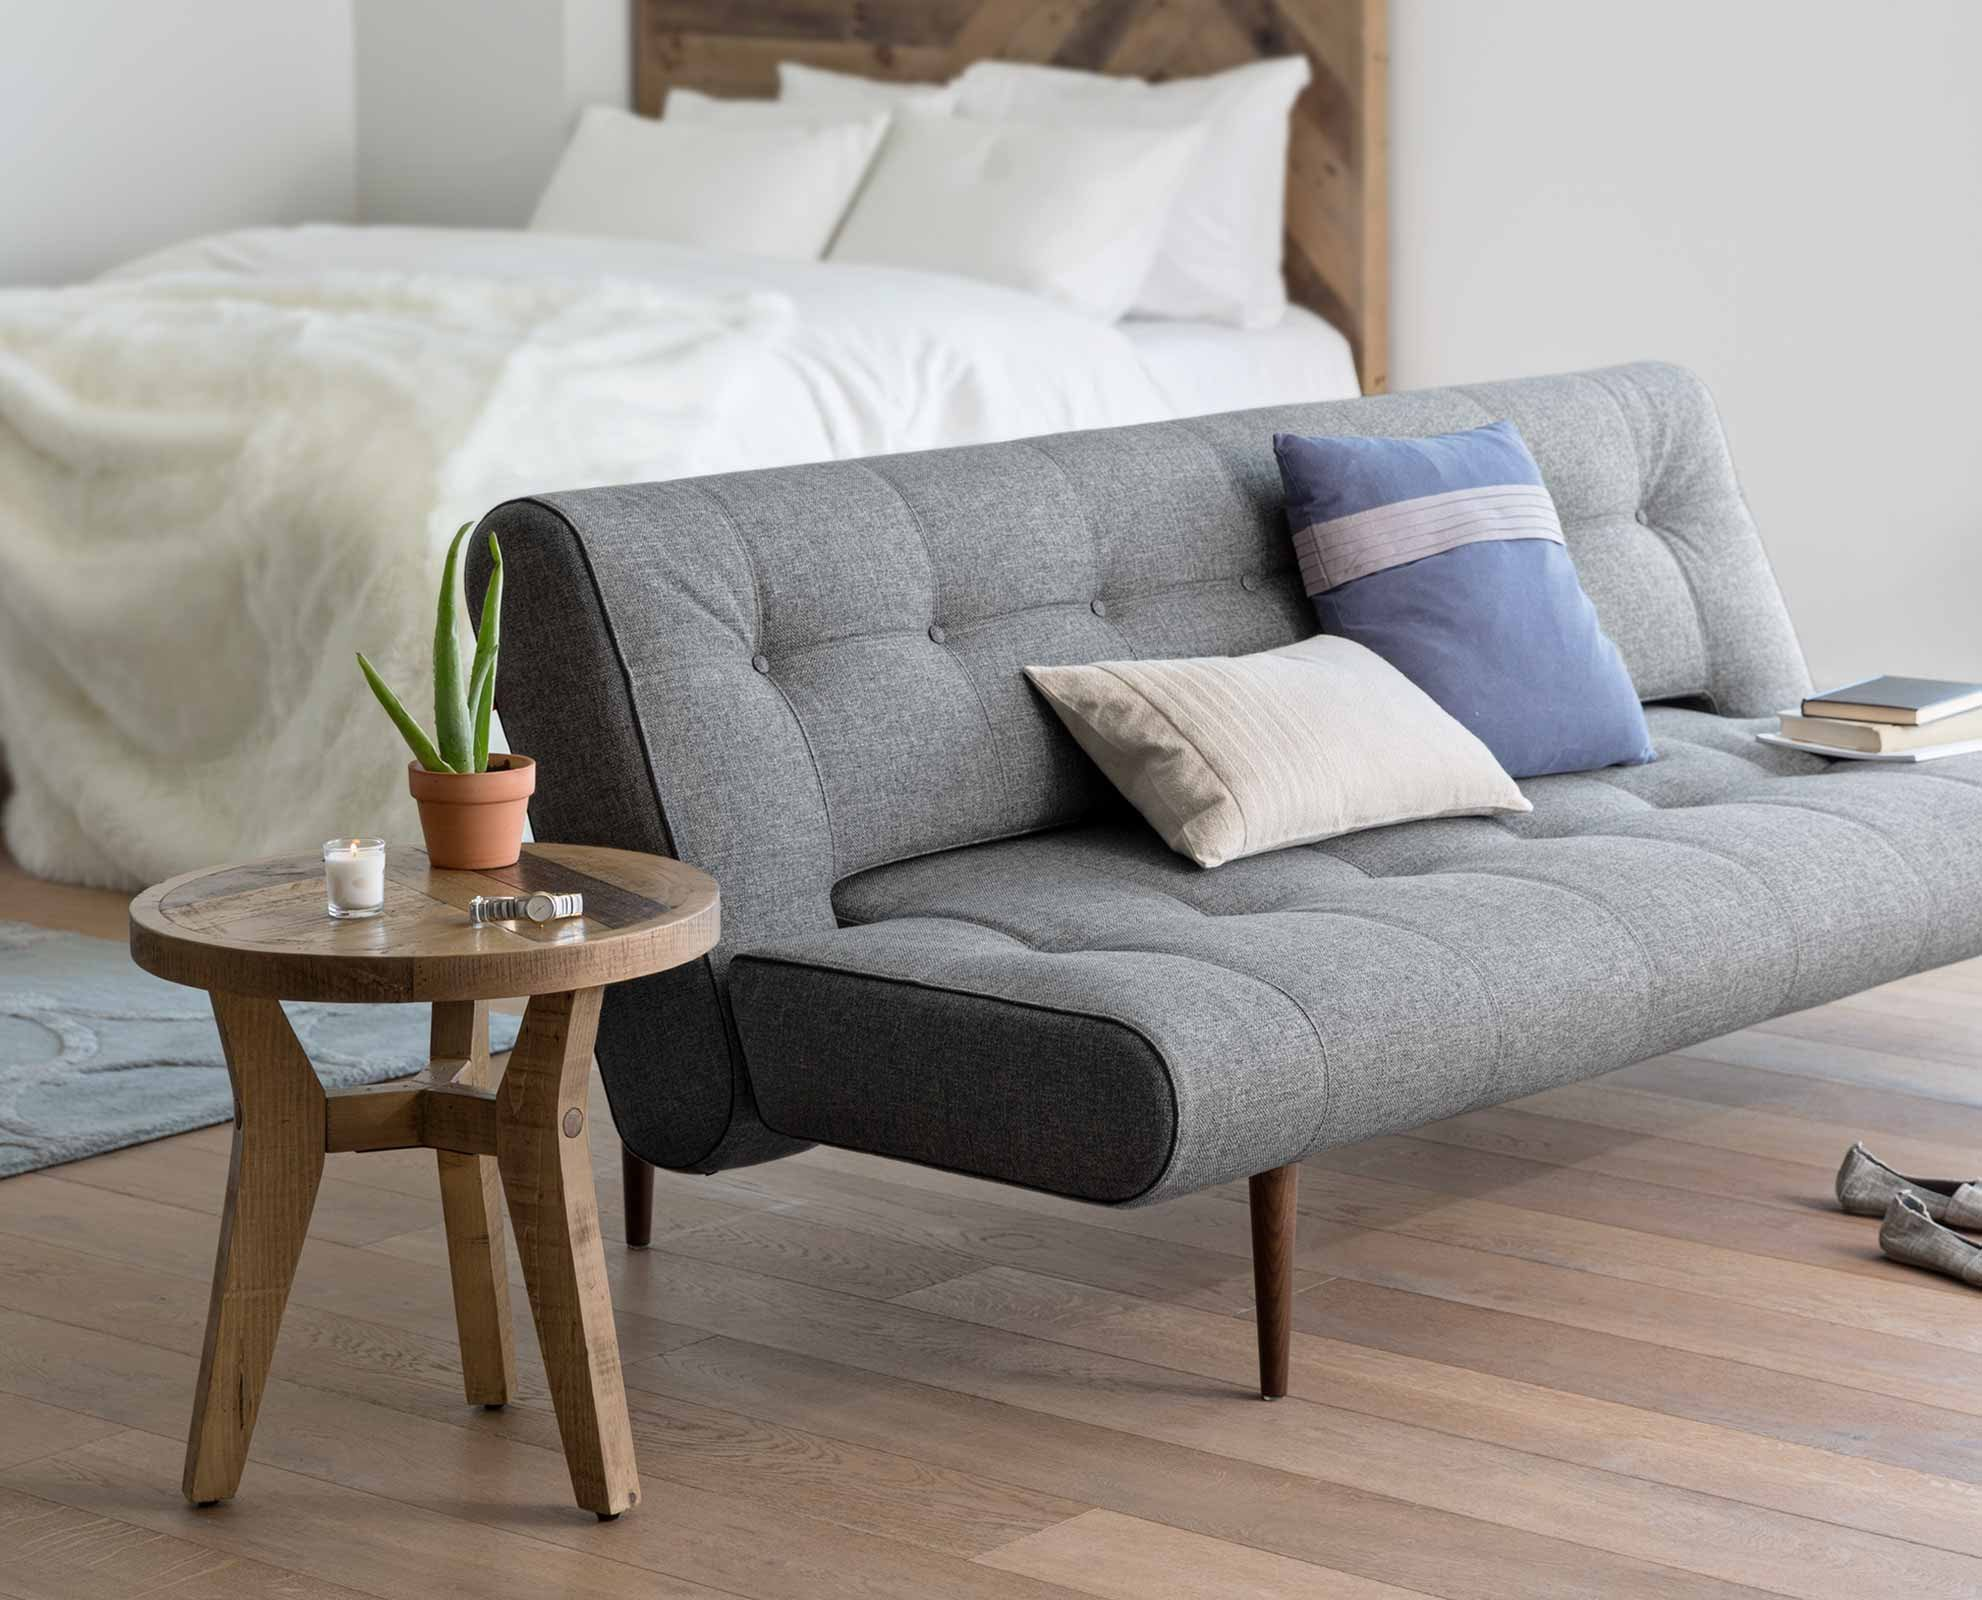 Best Tropeca Convertible Sofa Couches For Small Spaces Grey 400 x 300